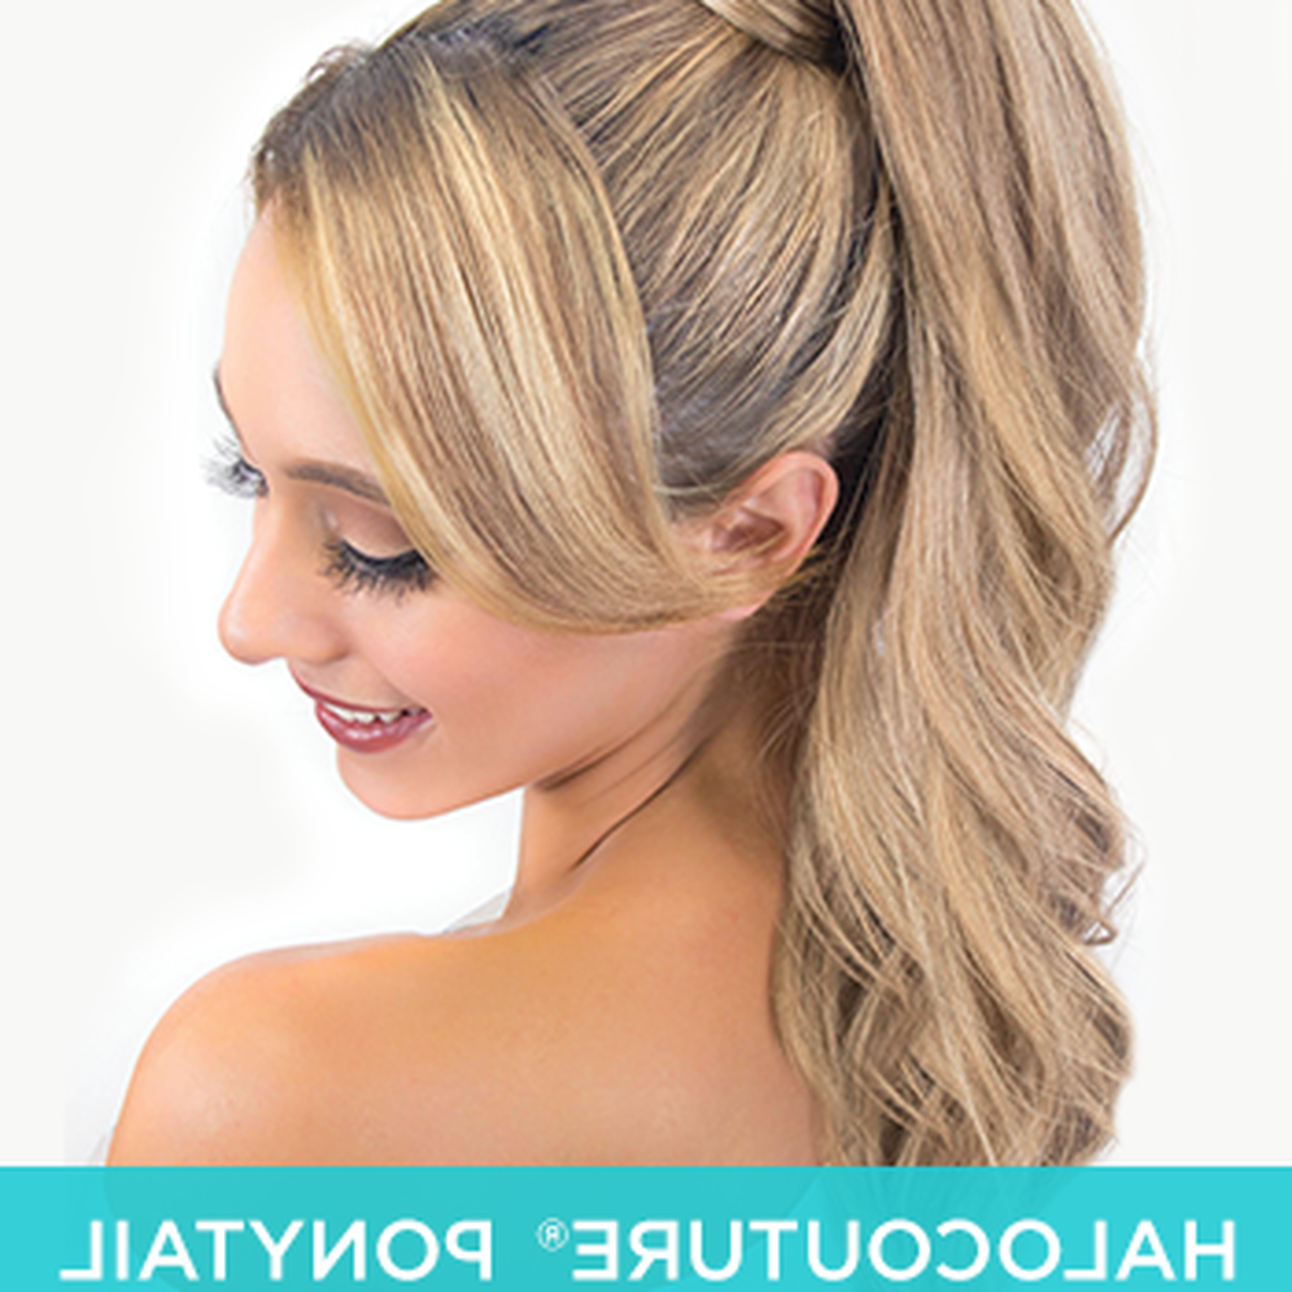 Halo Couture Ponytail Regarding Most Recently Released Halo Ponytail Hairstyles (View 8 of 20)